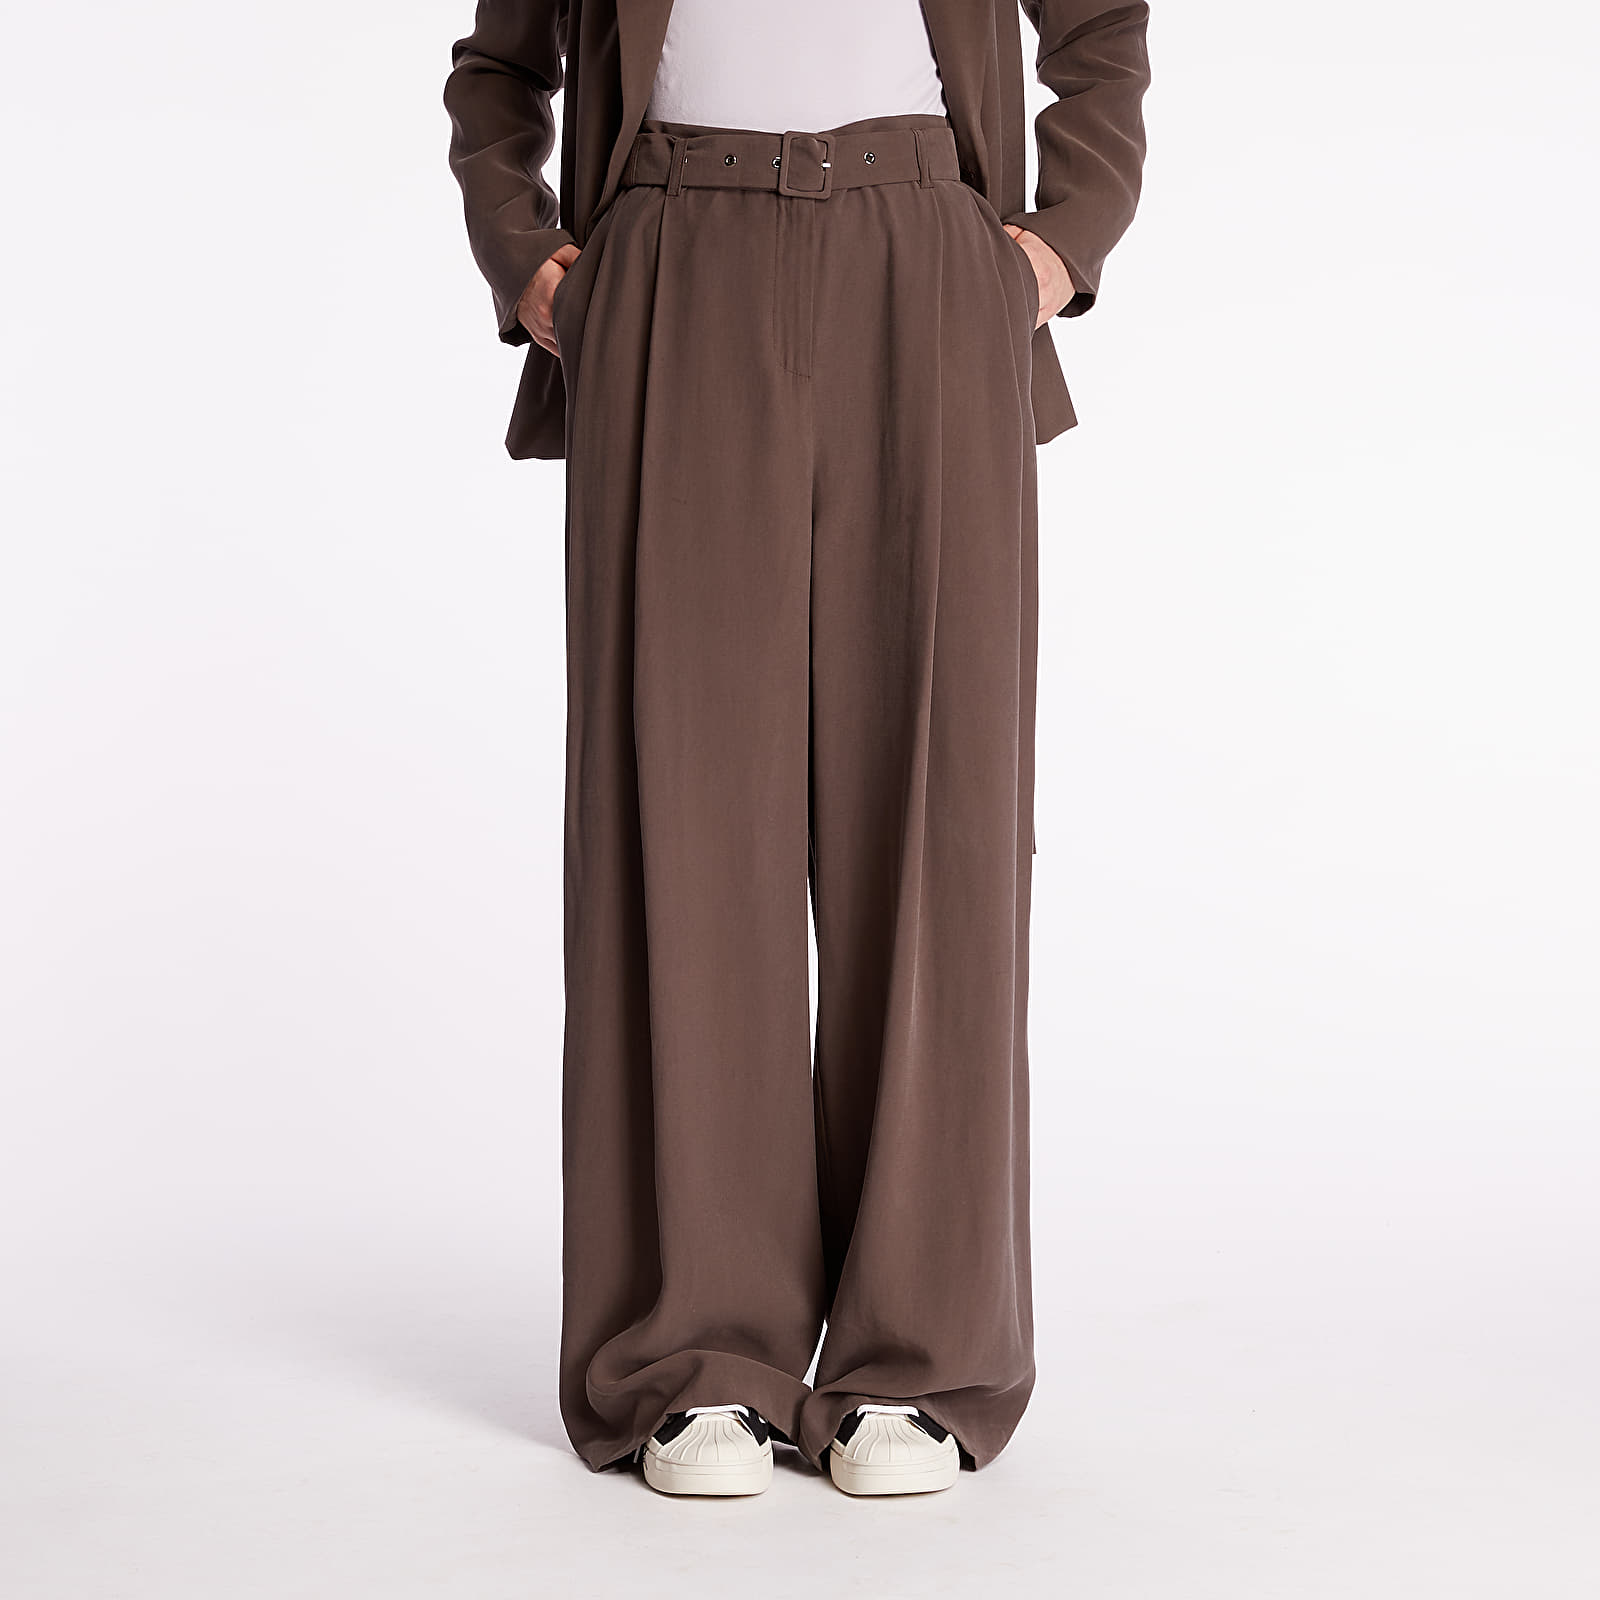 Pants and jeans Pietro Filipi Lady's Trousers Brown